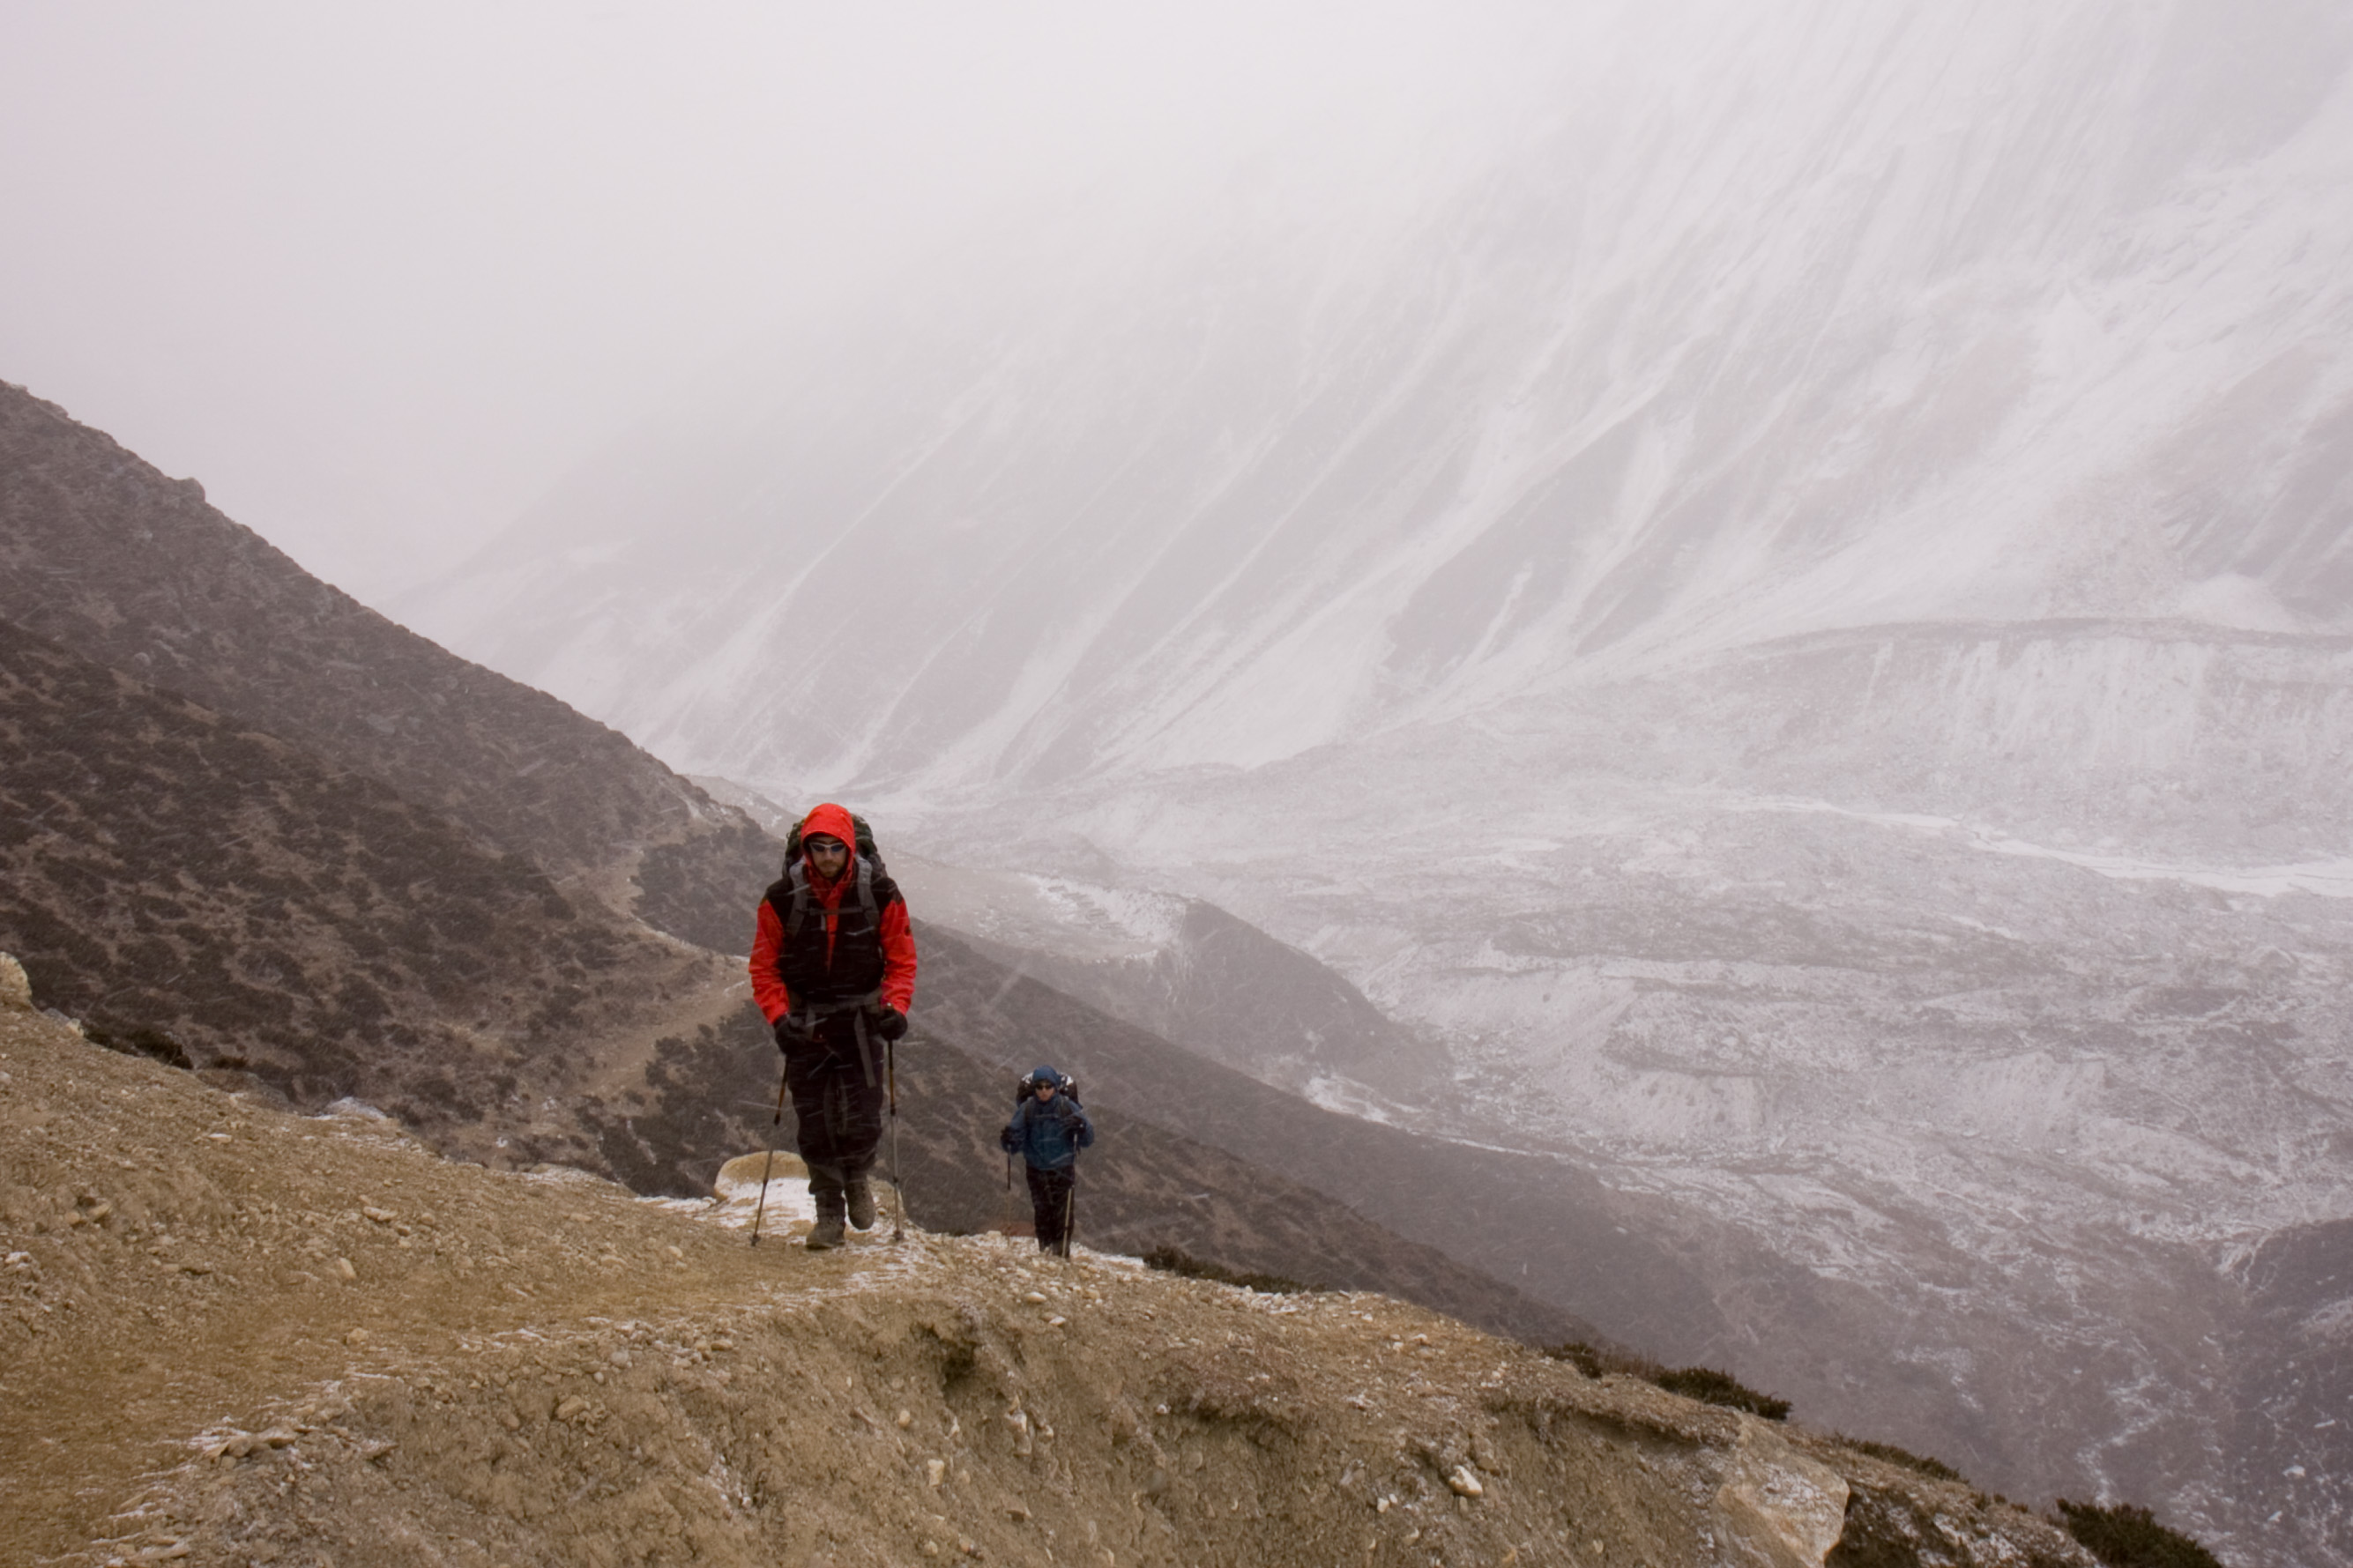 Manaslu Circuit Trek On the way to Dharmashala by Petr Meissner